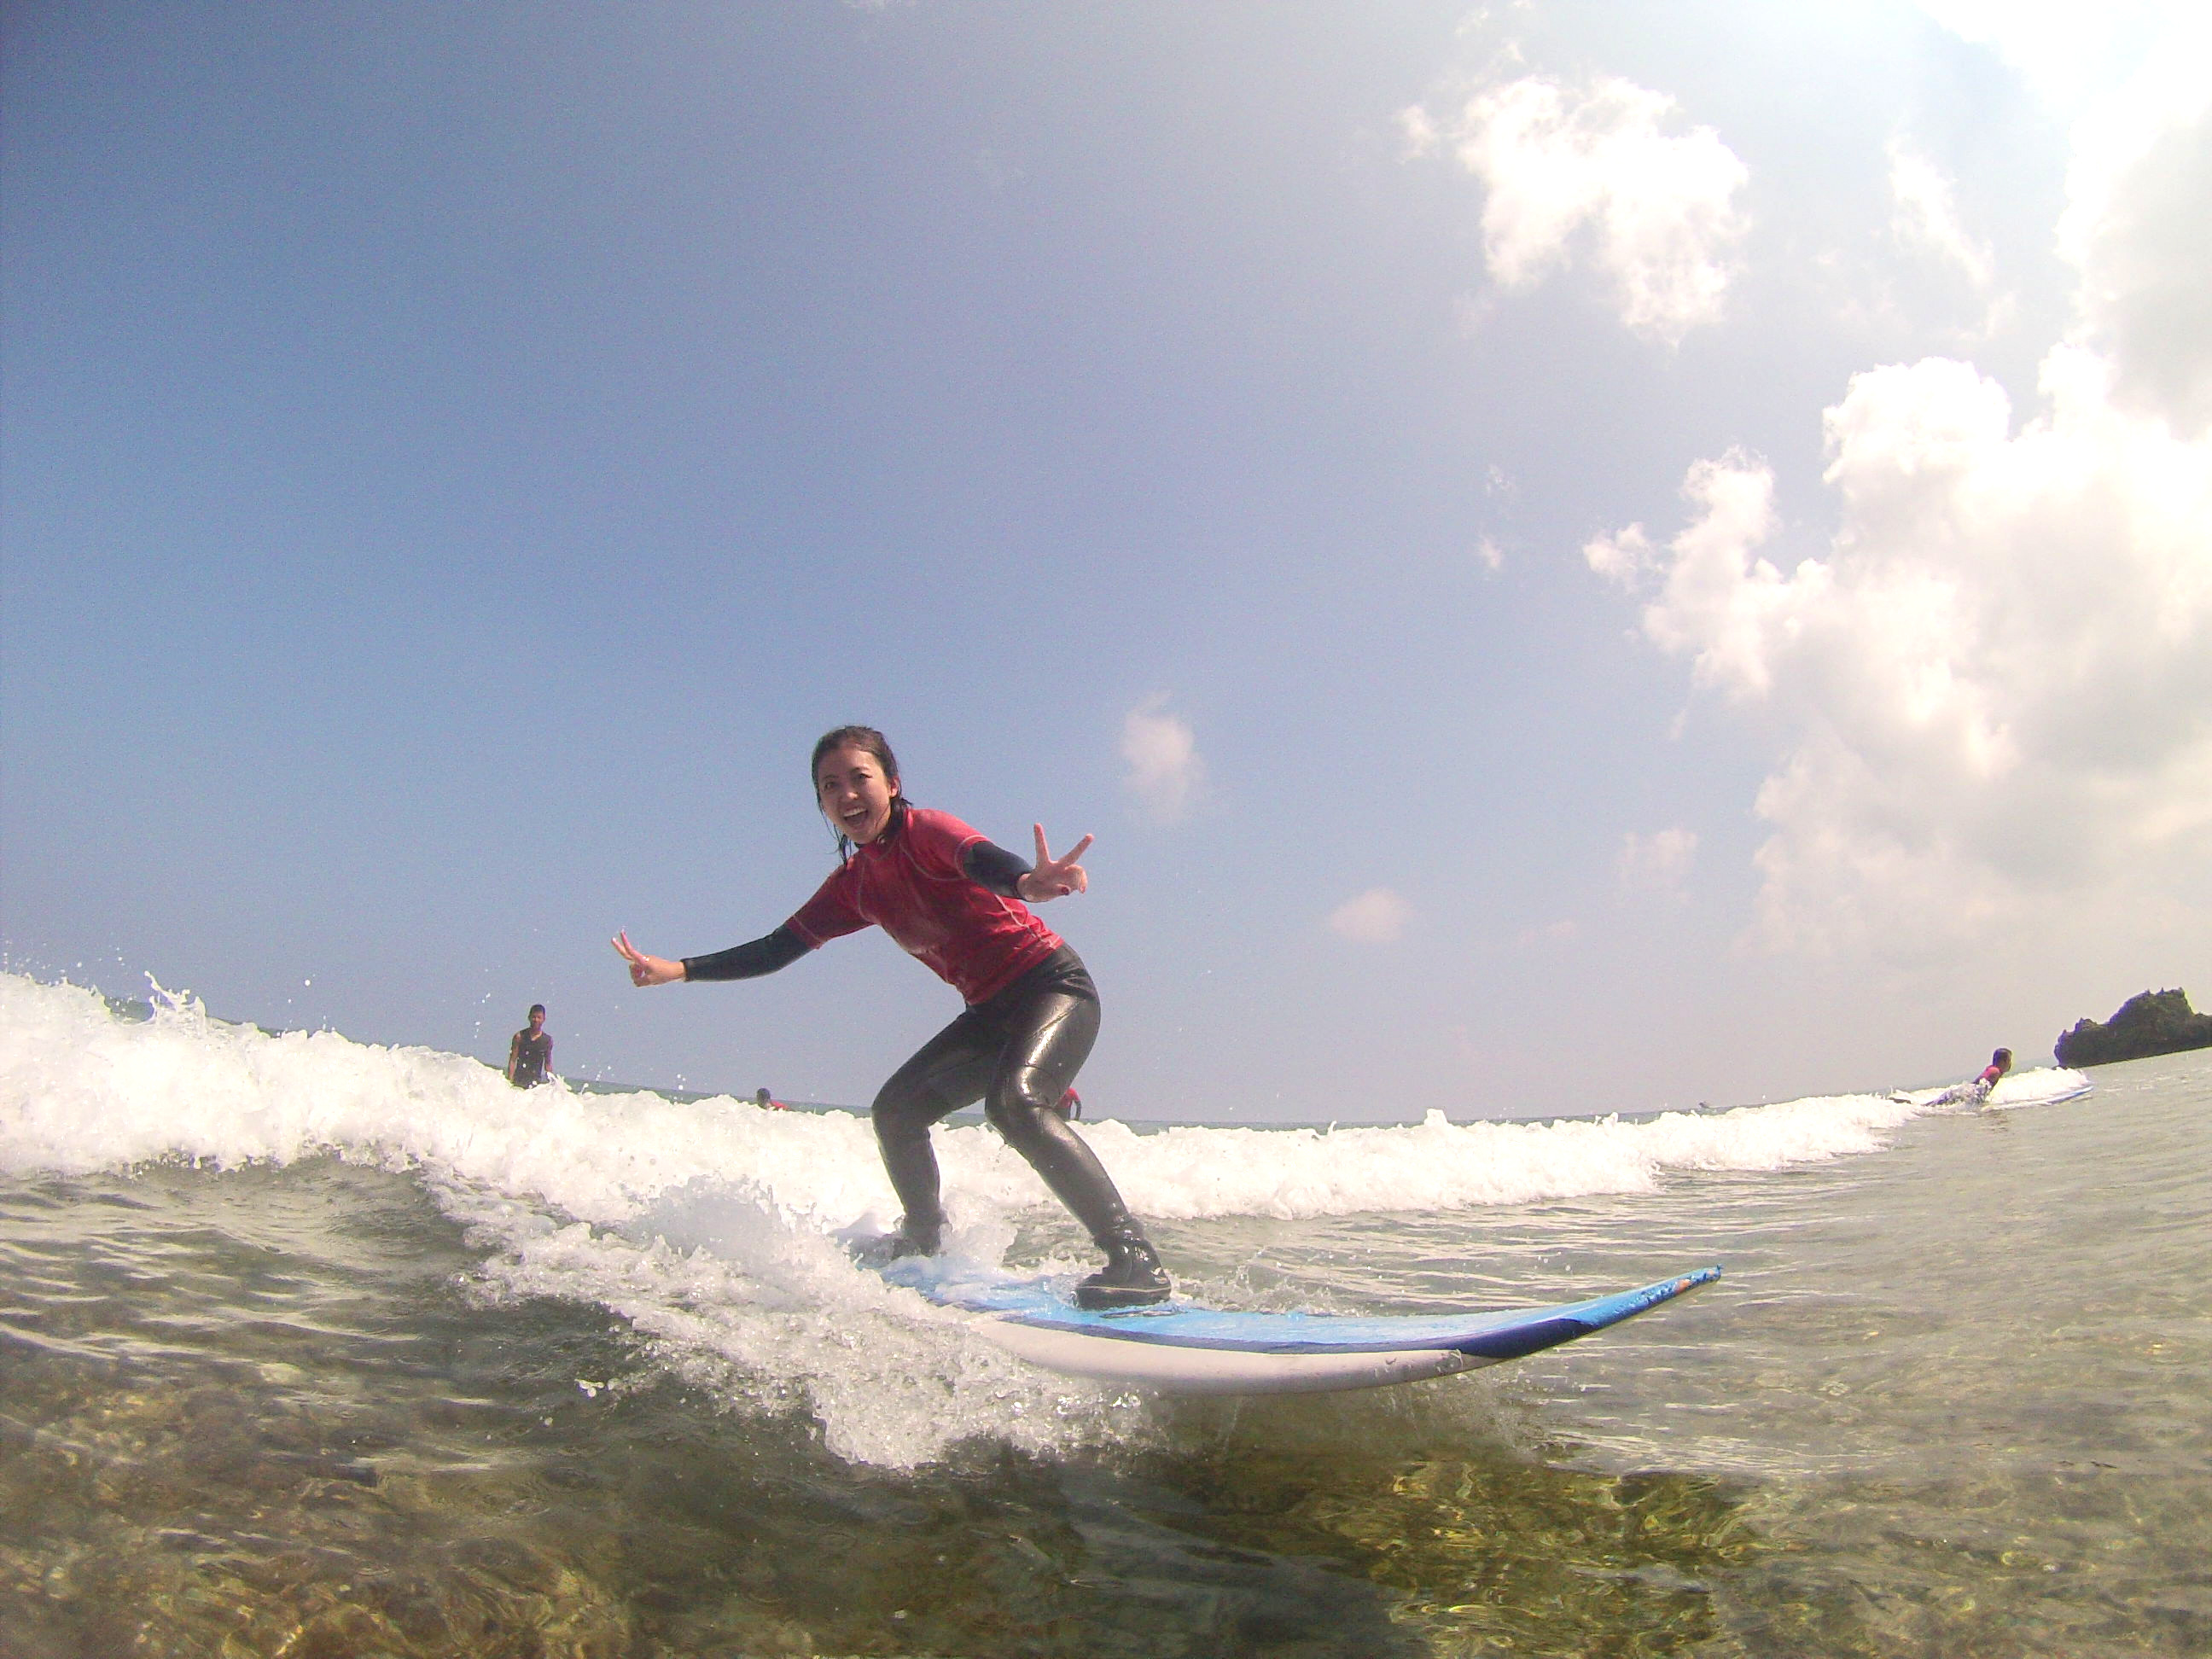 Surfing for the first time6